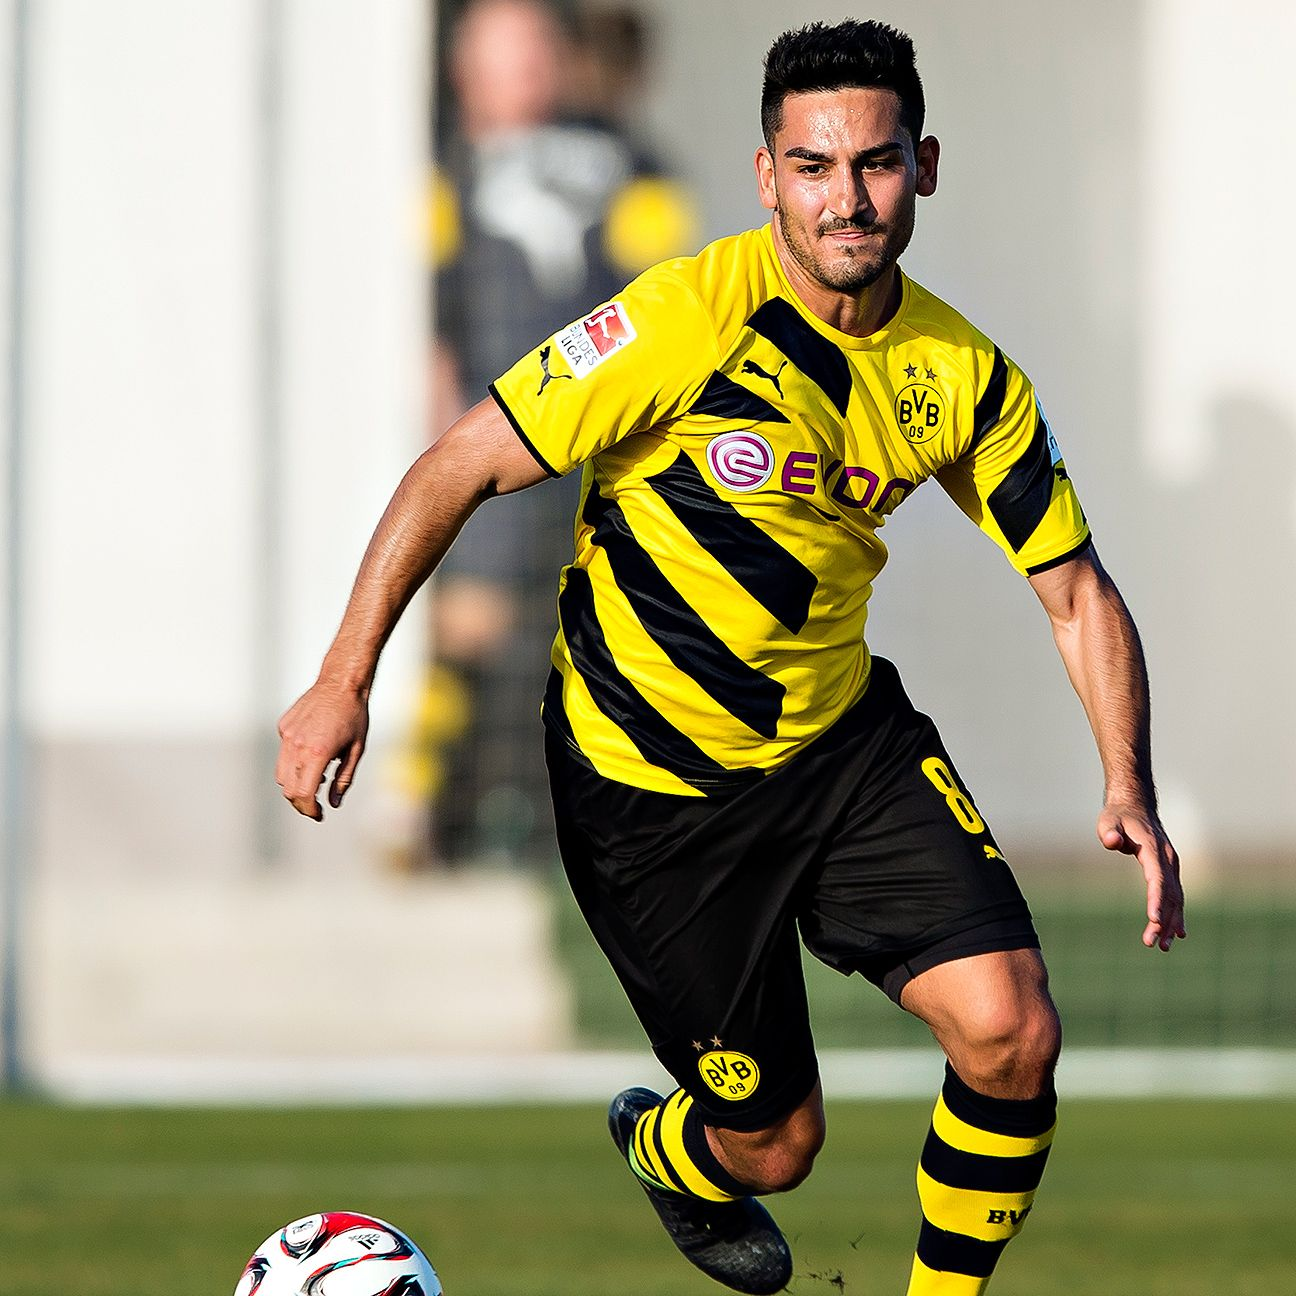 Ilkay Gundogan is expected be back to shore up Borussia Dortmund's midfield versus Augsburg.